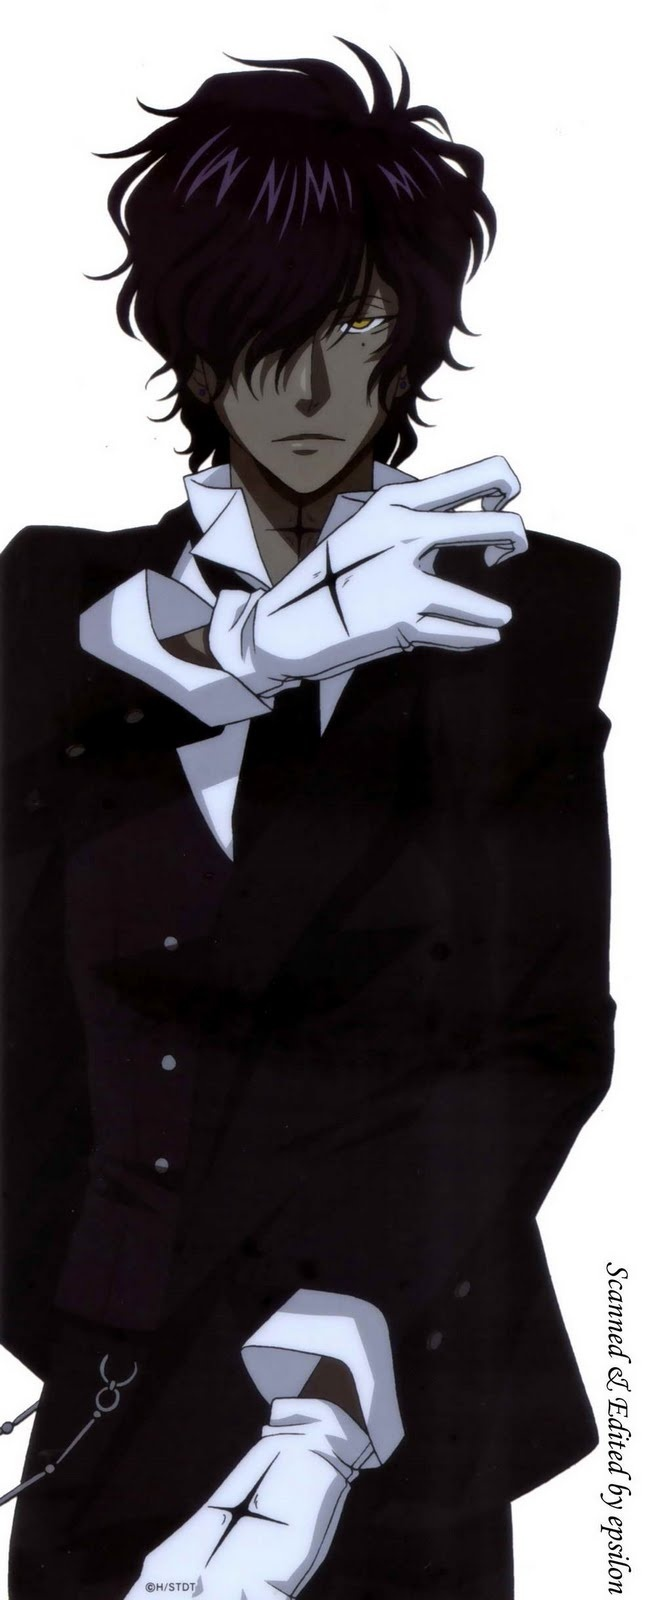 D Gray Man Anime Characters : Tyki mikk images hd wallpaper and background